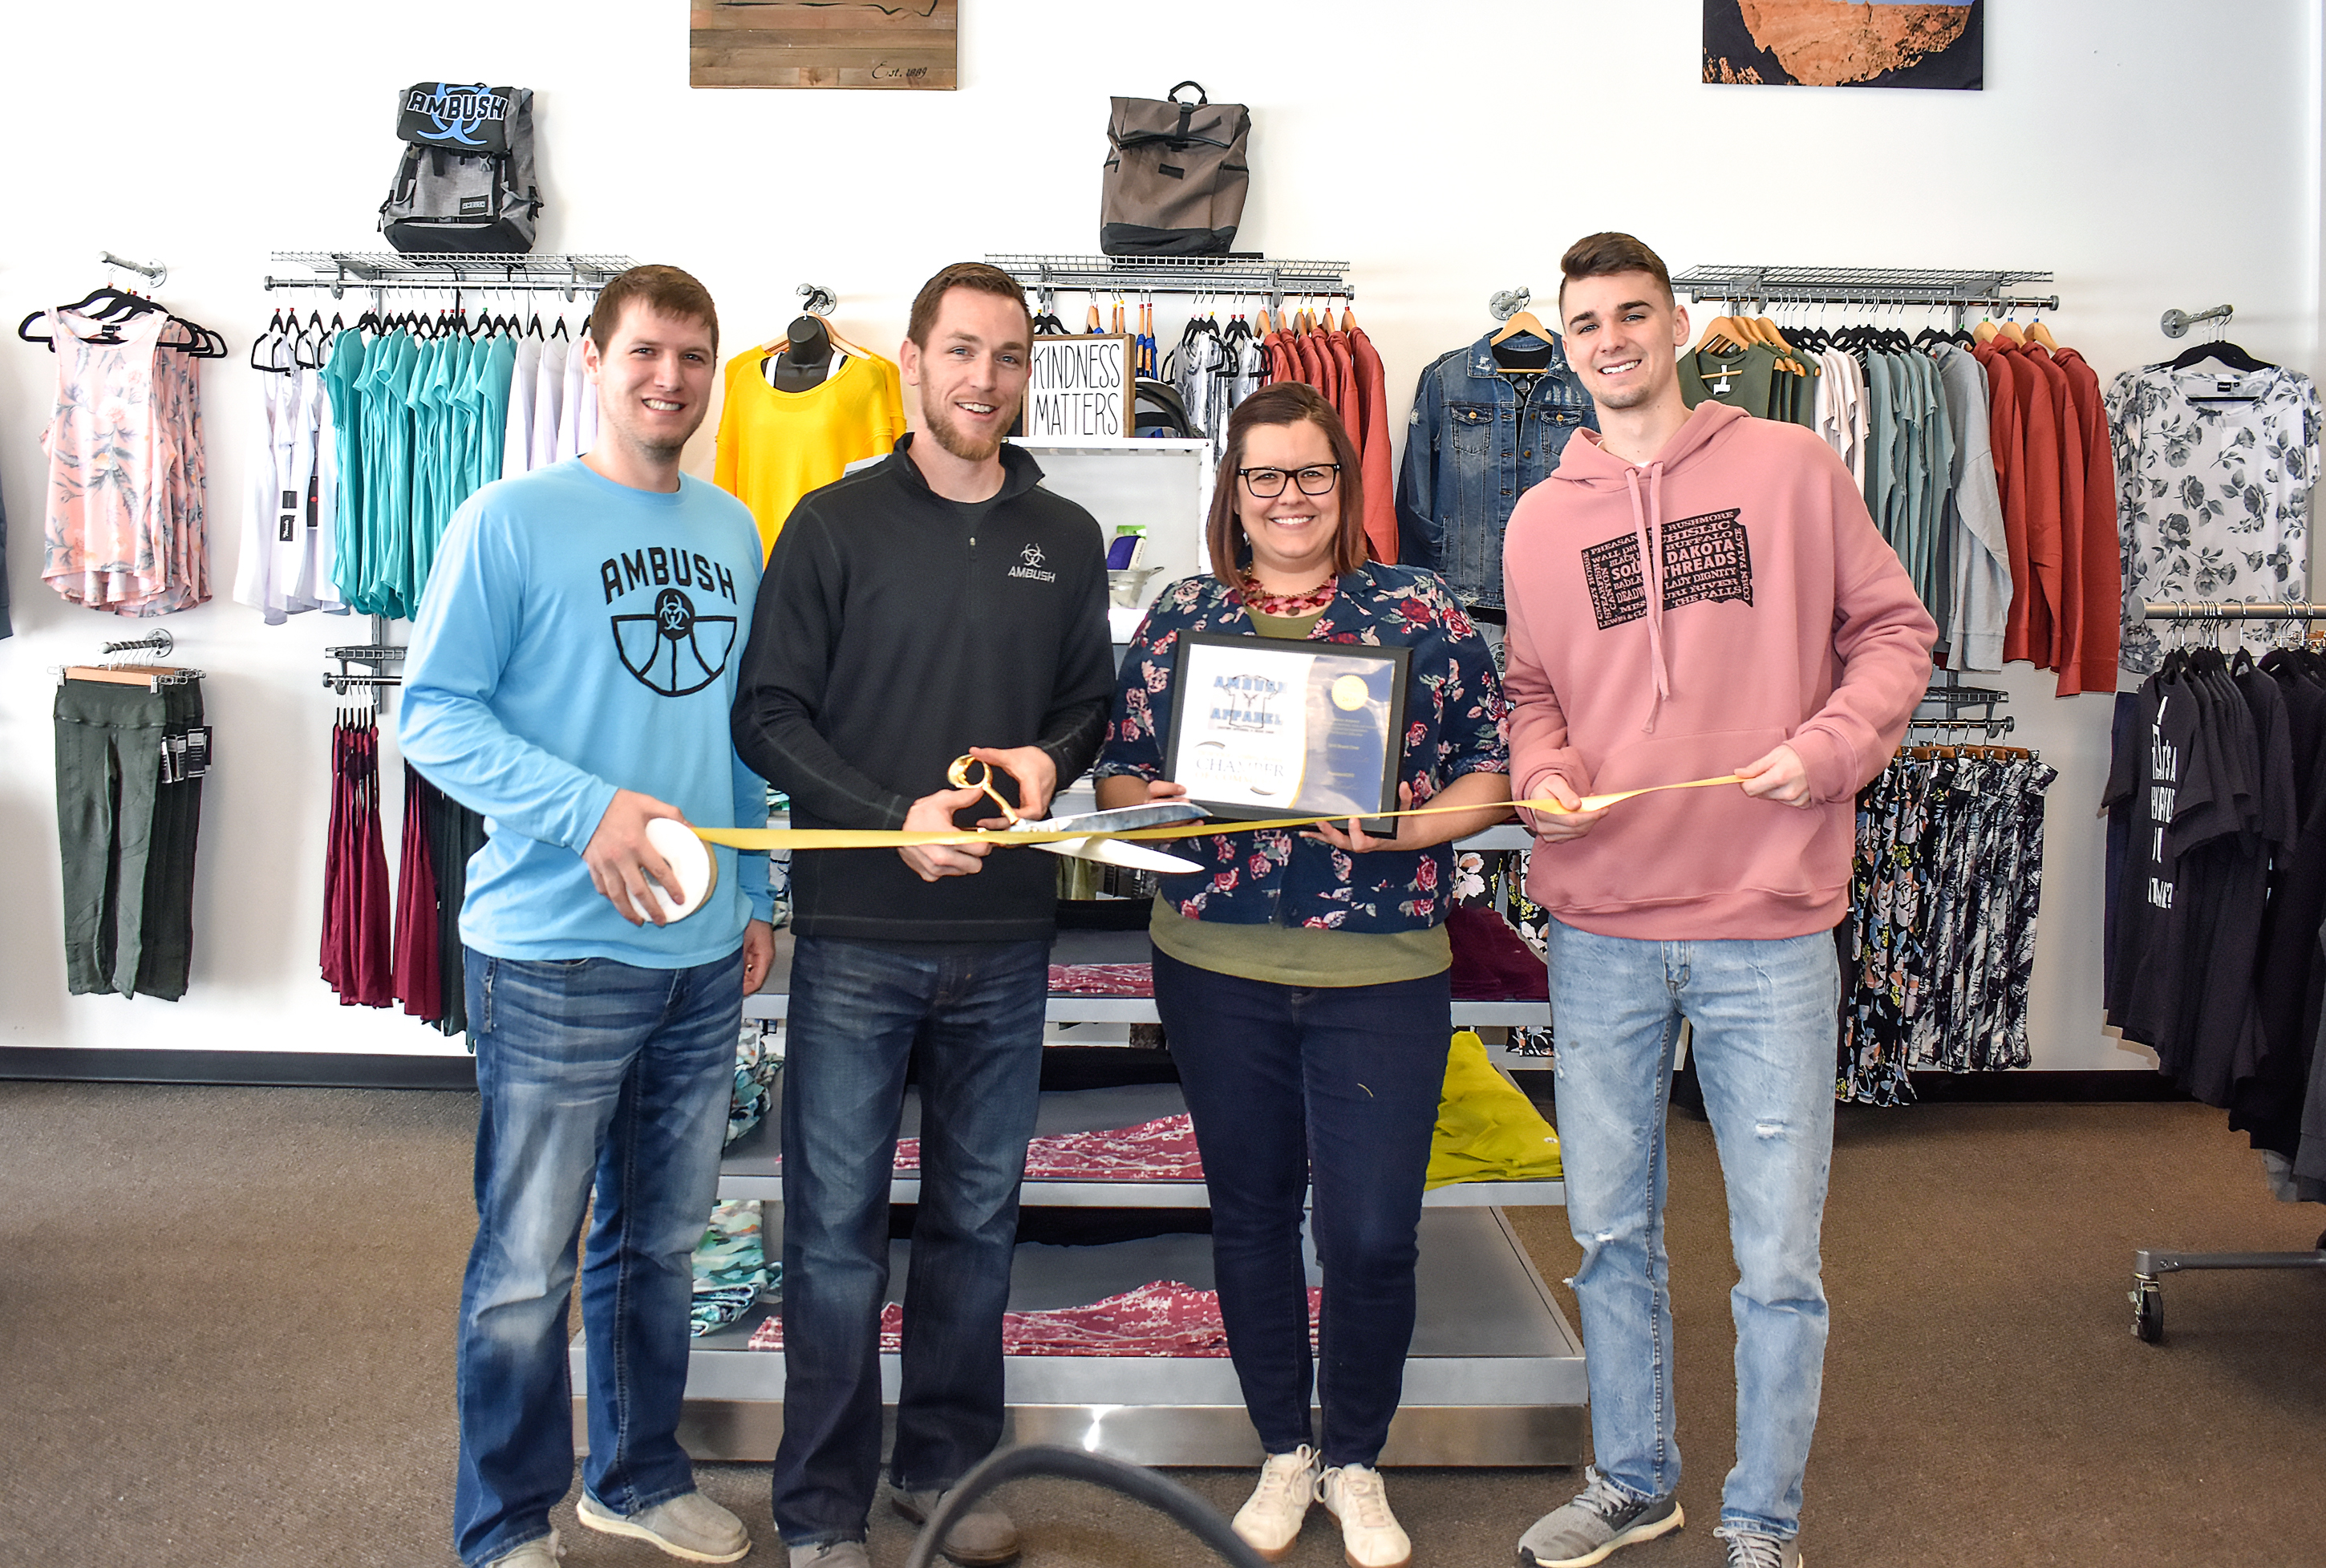 "Staffers at South Dakota Threads, Tri-State Ambush Basketball and Ambush Apparel cut the ribbon Thursday celebrating their membership in the Brandon Valley Area Chamber of Commerce. Owned by Garrett Callahan <i>(second from left)</i>, the screenprinting shop and South Dakota-made boutique opened at 1517 E. Holly Blvd. in 2018. Also pictured are Cory Jacobsen, Jessica Johnson and Trae VandeBerg.<span class=""Apple-converted-space""> <strong>Jamie Hult/BV Journal</strong></span>*/"